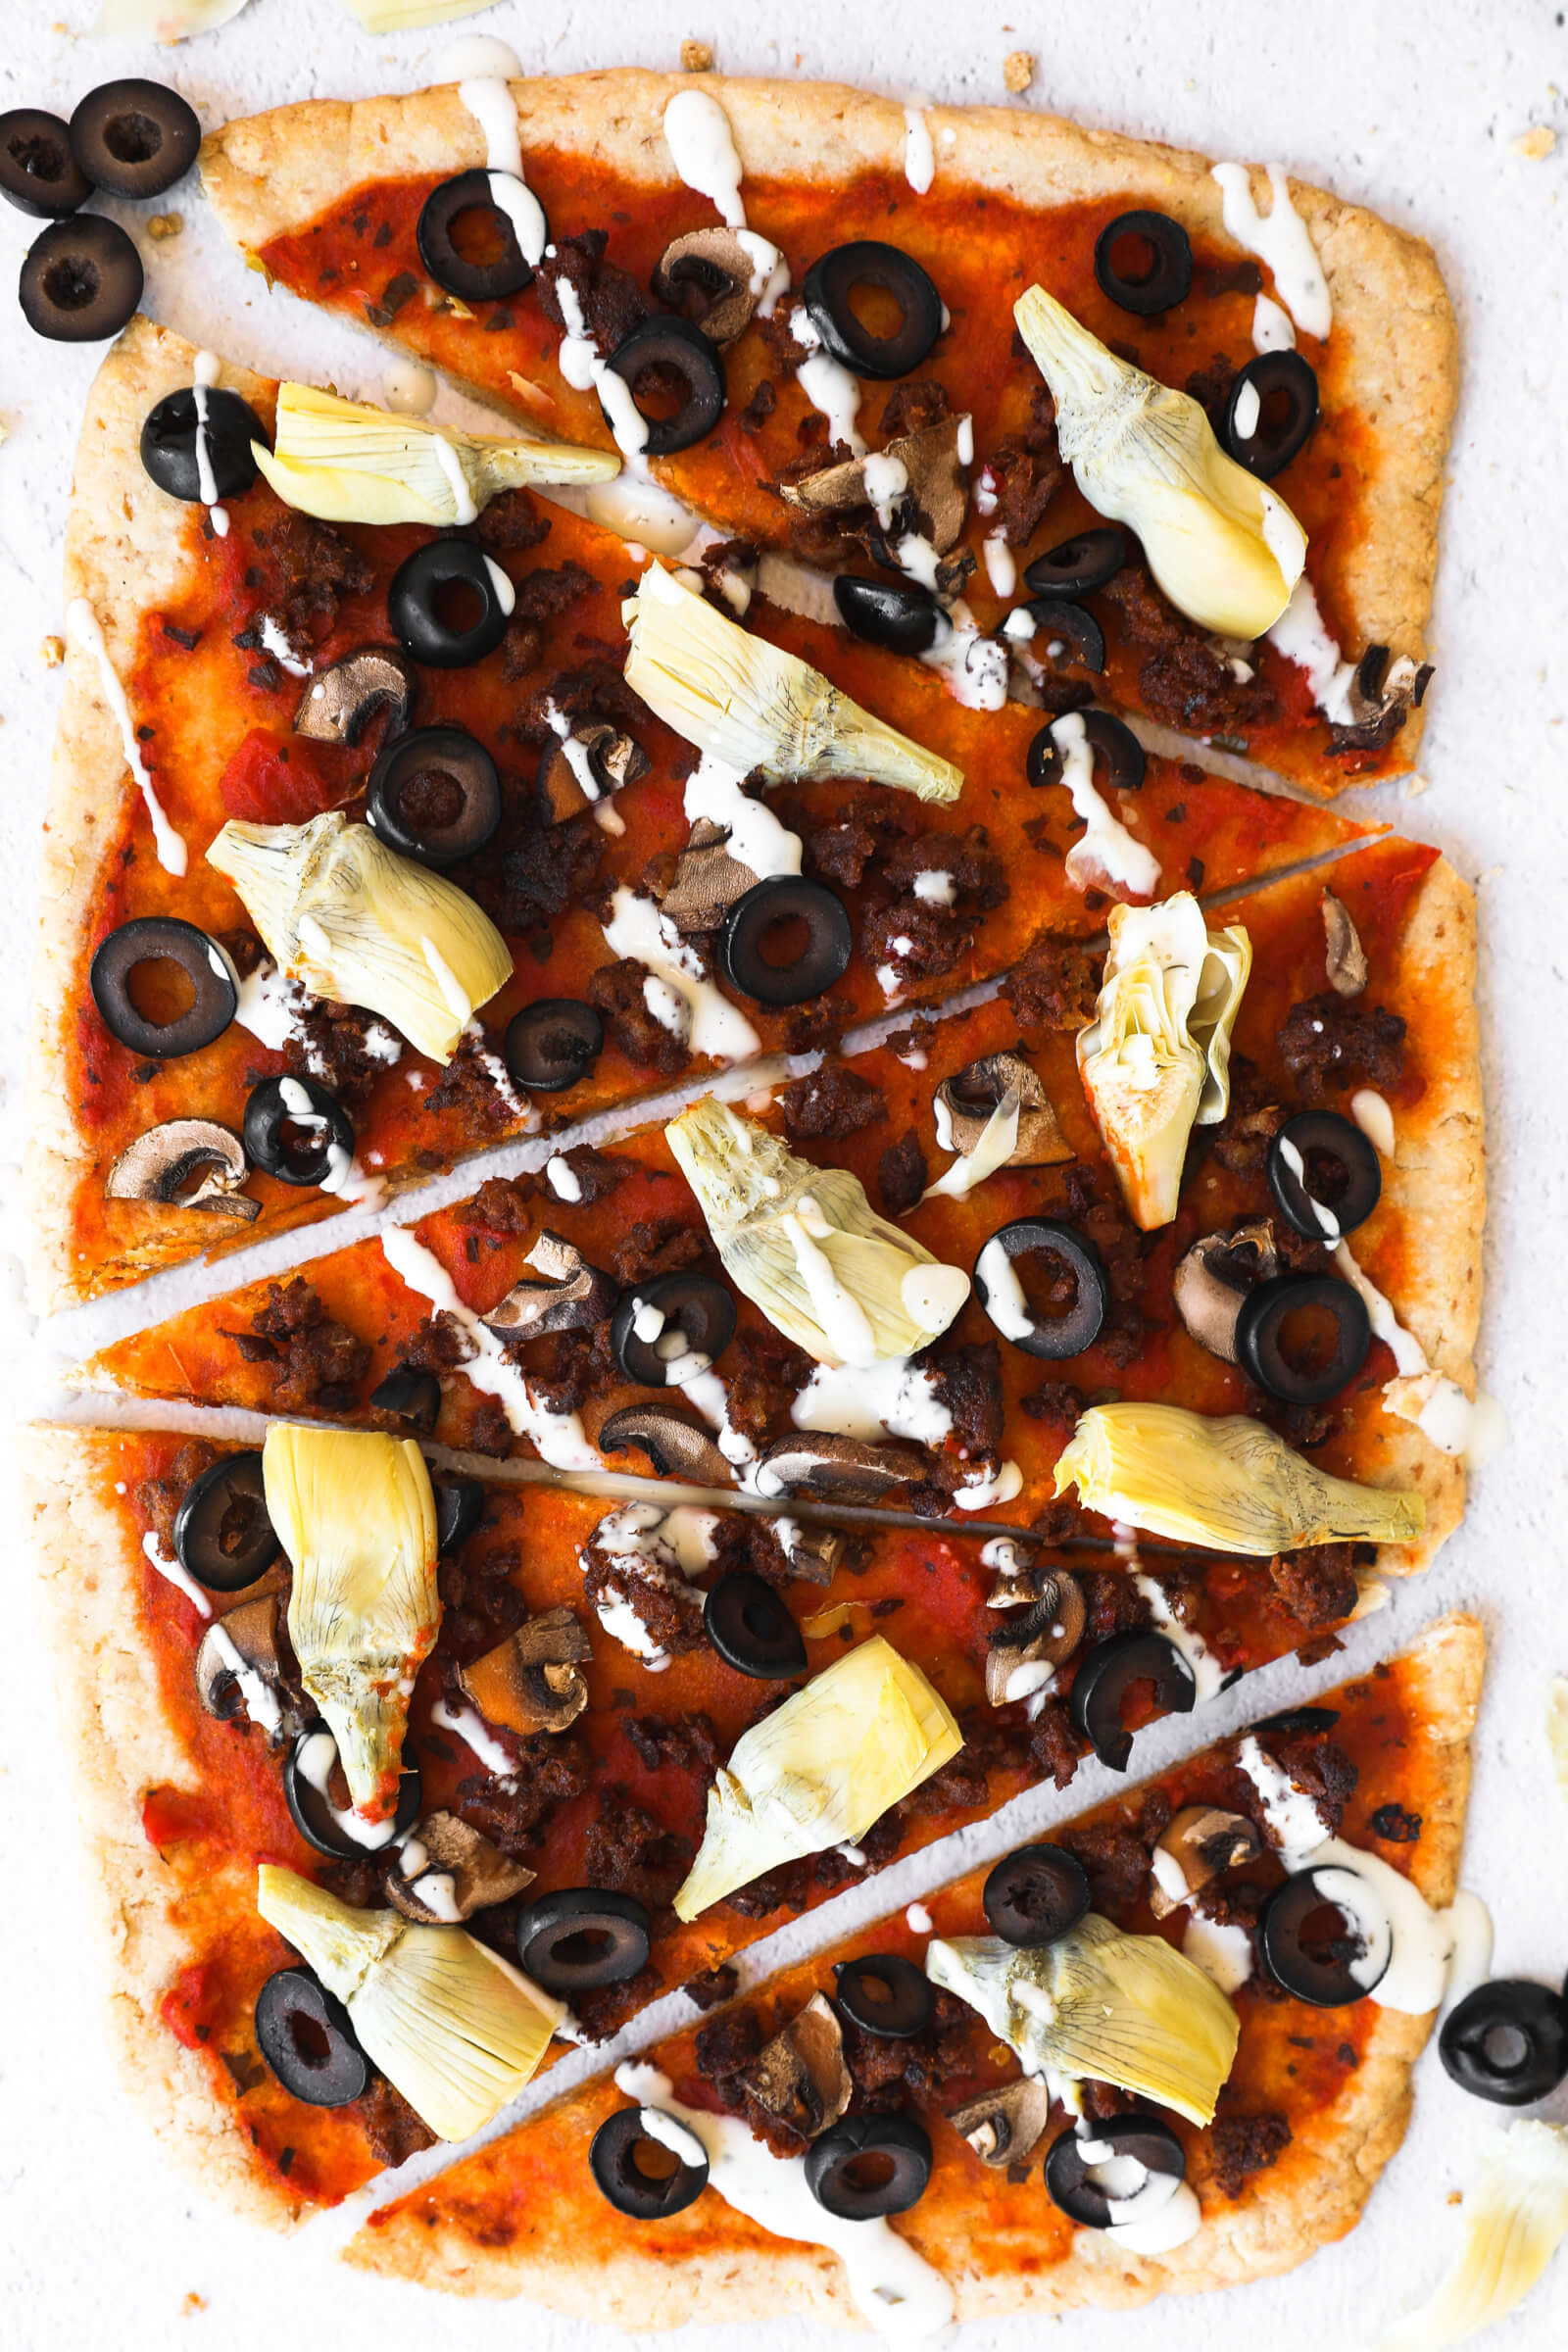 Homemade gluten free flatbread pizza sliced into pieces and drizzled with ranch. Pieces are lined up vertically.